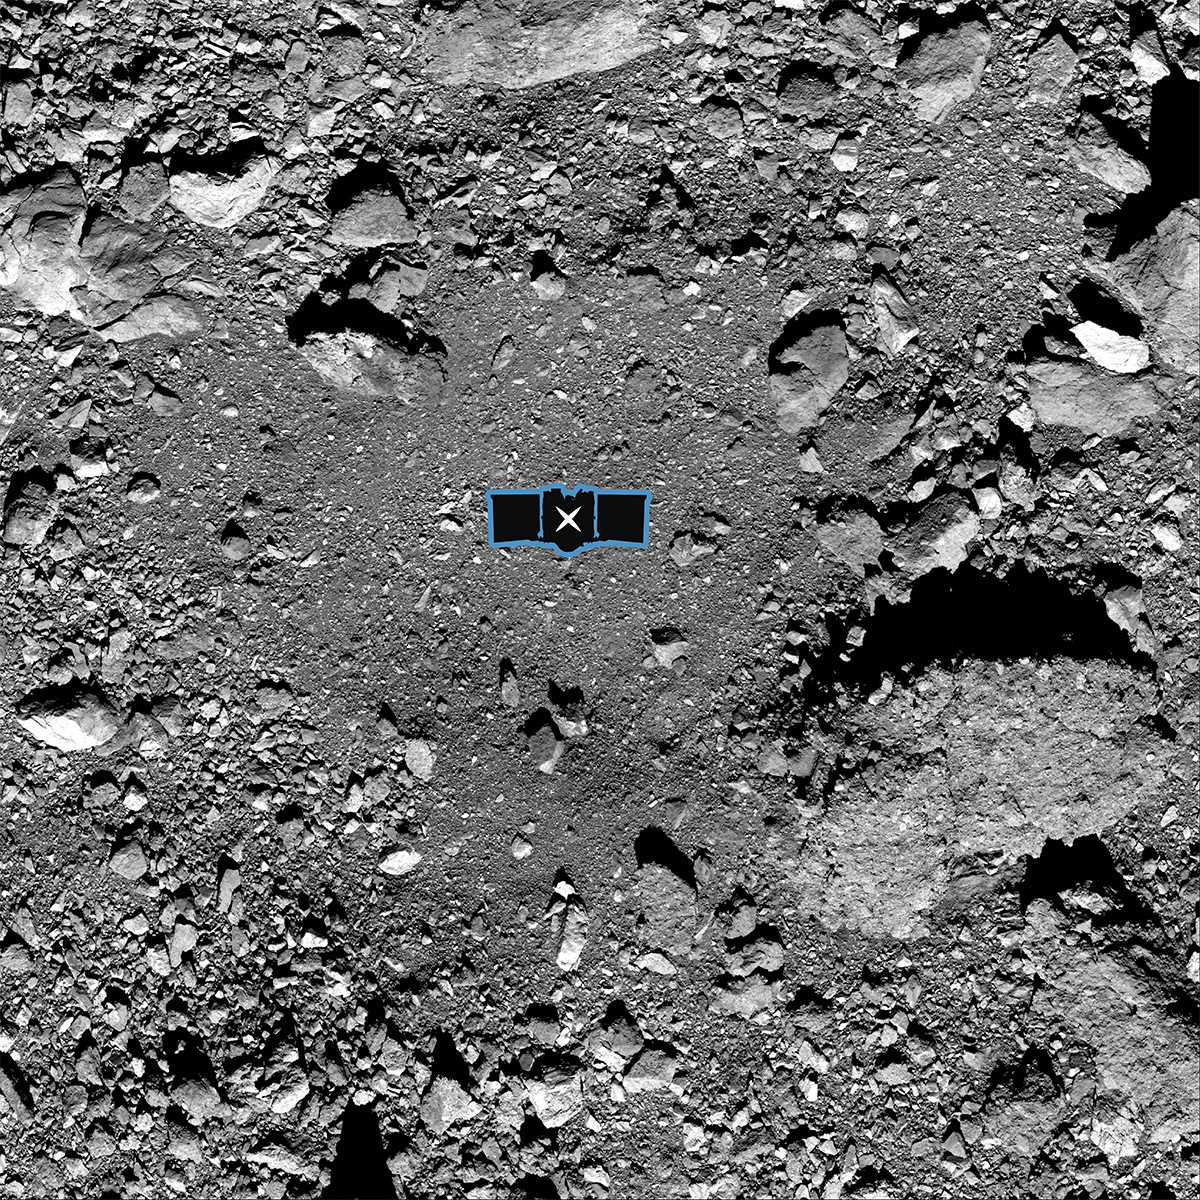 Black and white image of landing site with an impression of the OSIRIS-REx vehicle